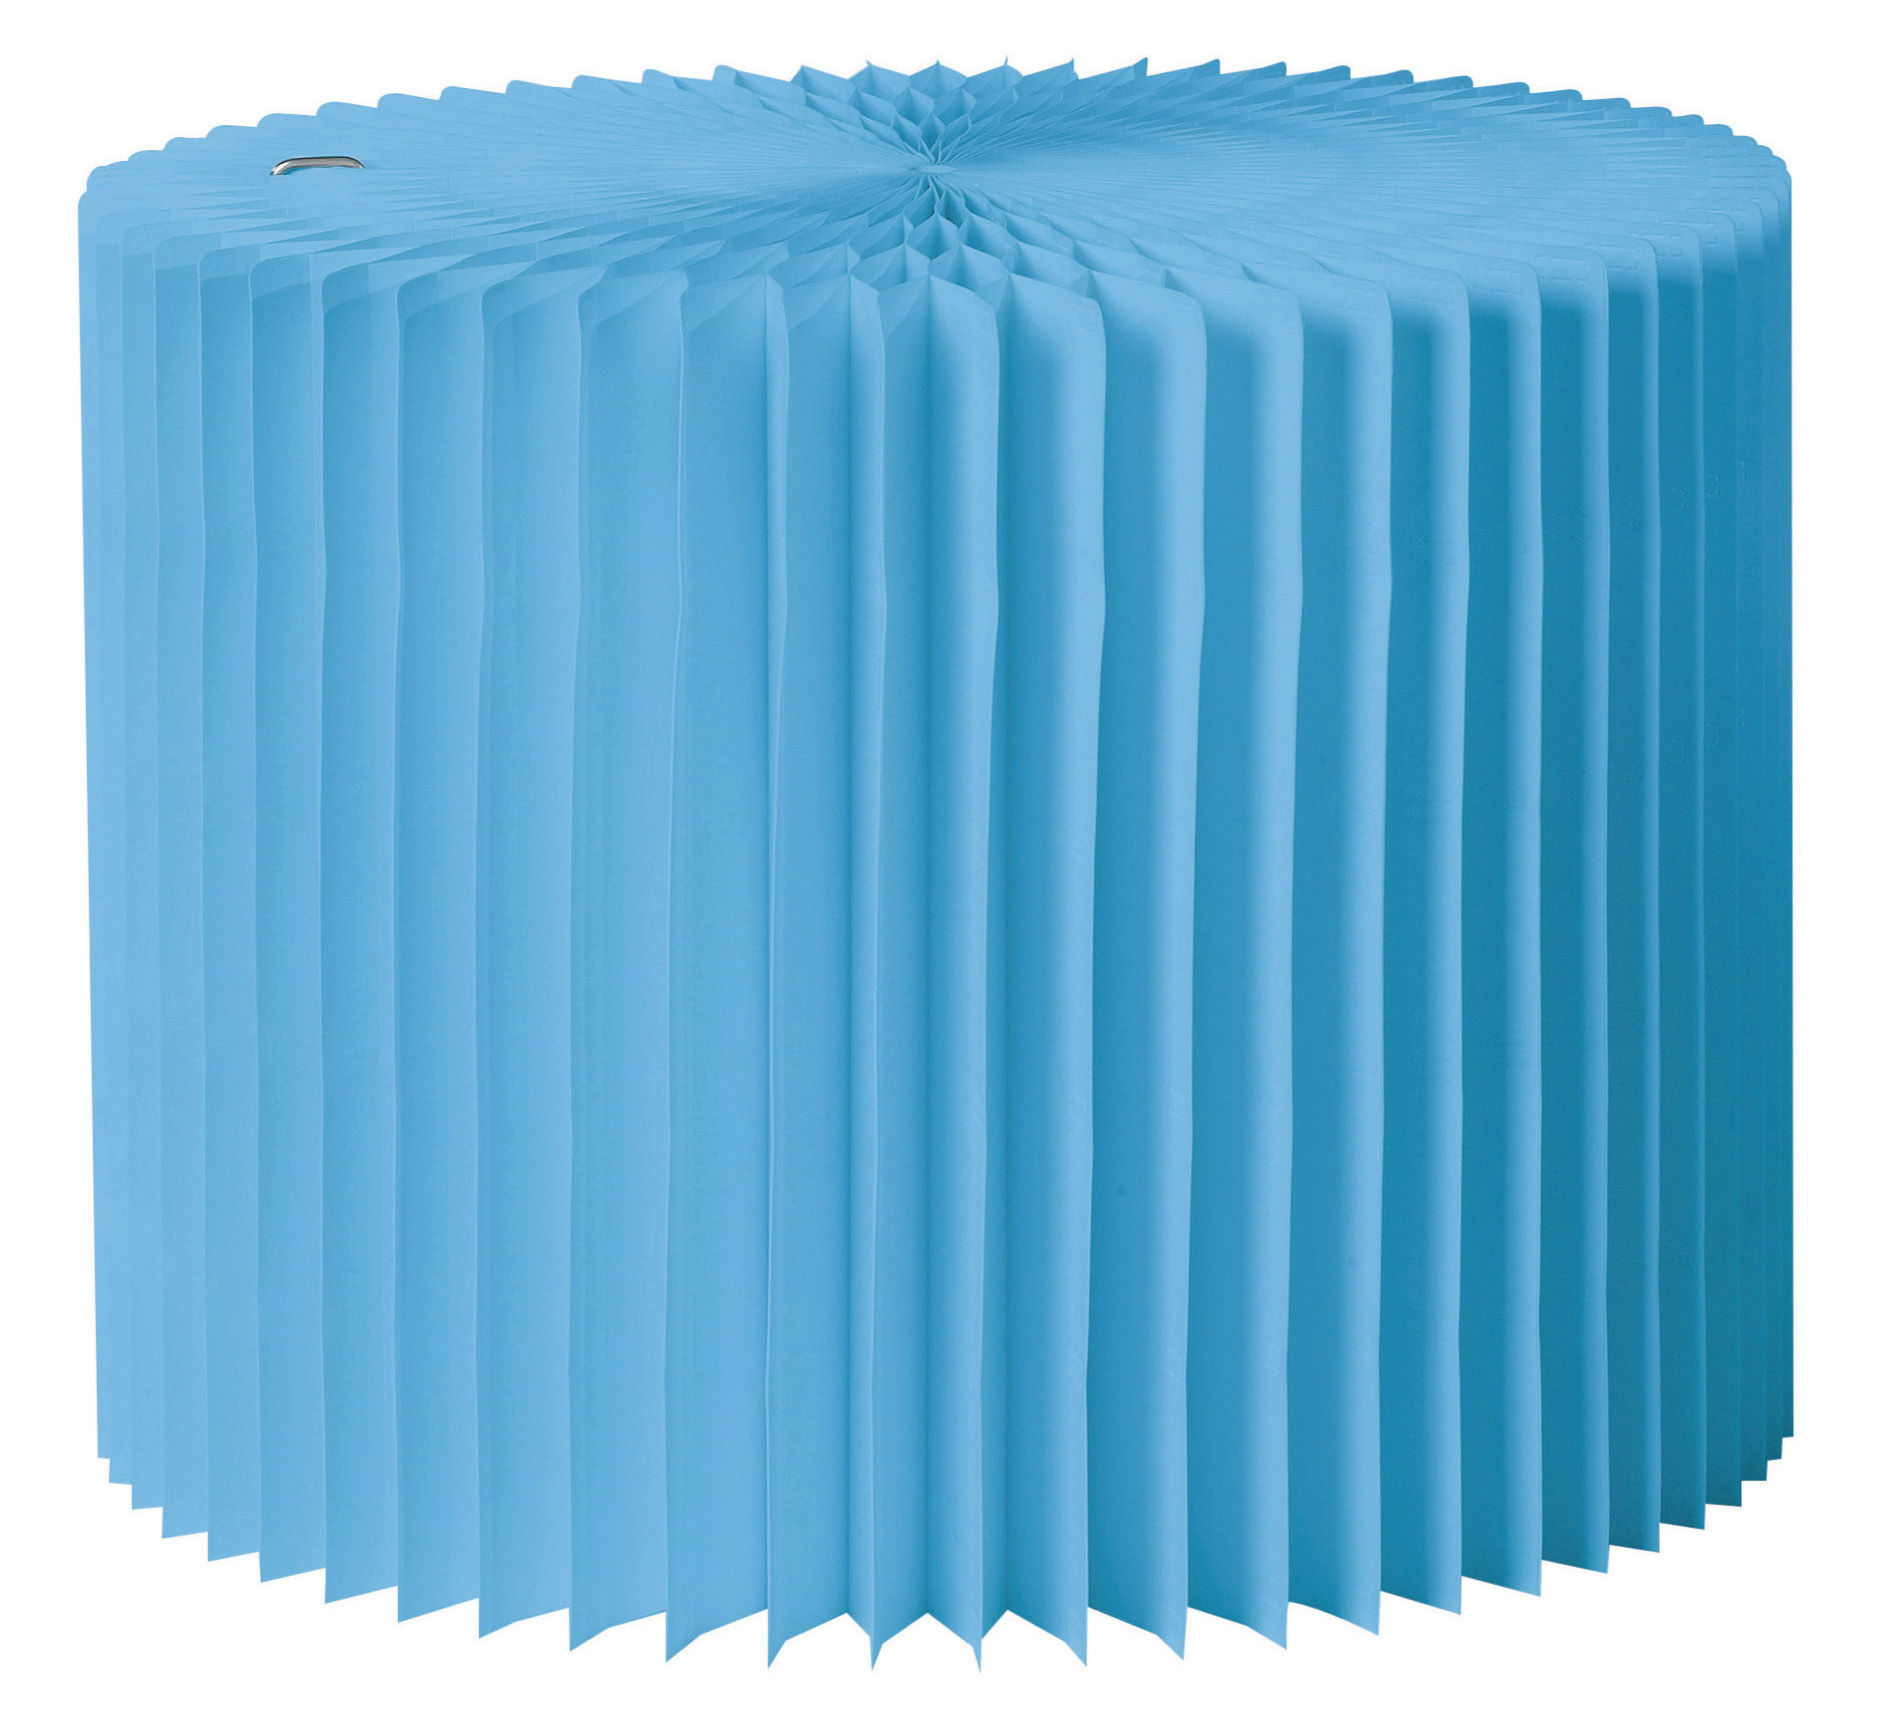 Furniture - Coffee Tables - K-Baby Pouf - With extensions by Vange - Blue - Polypropylene